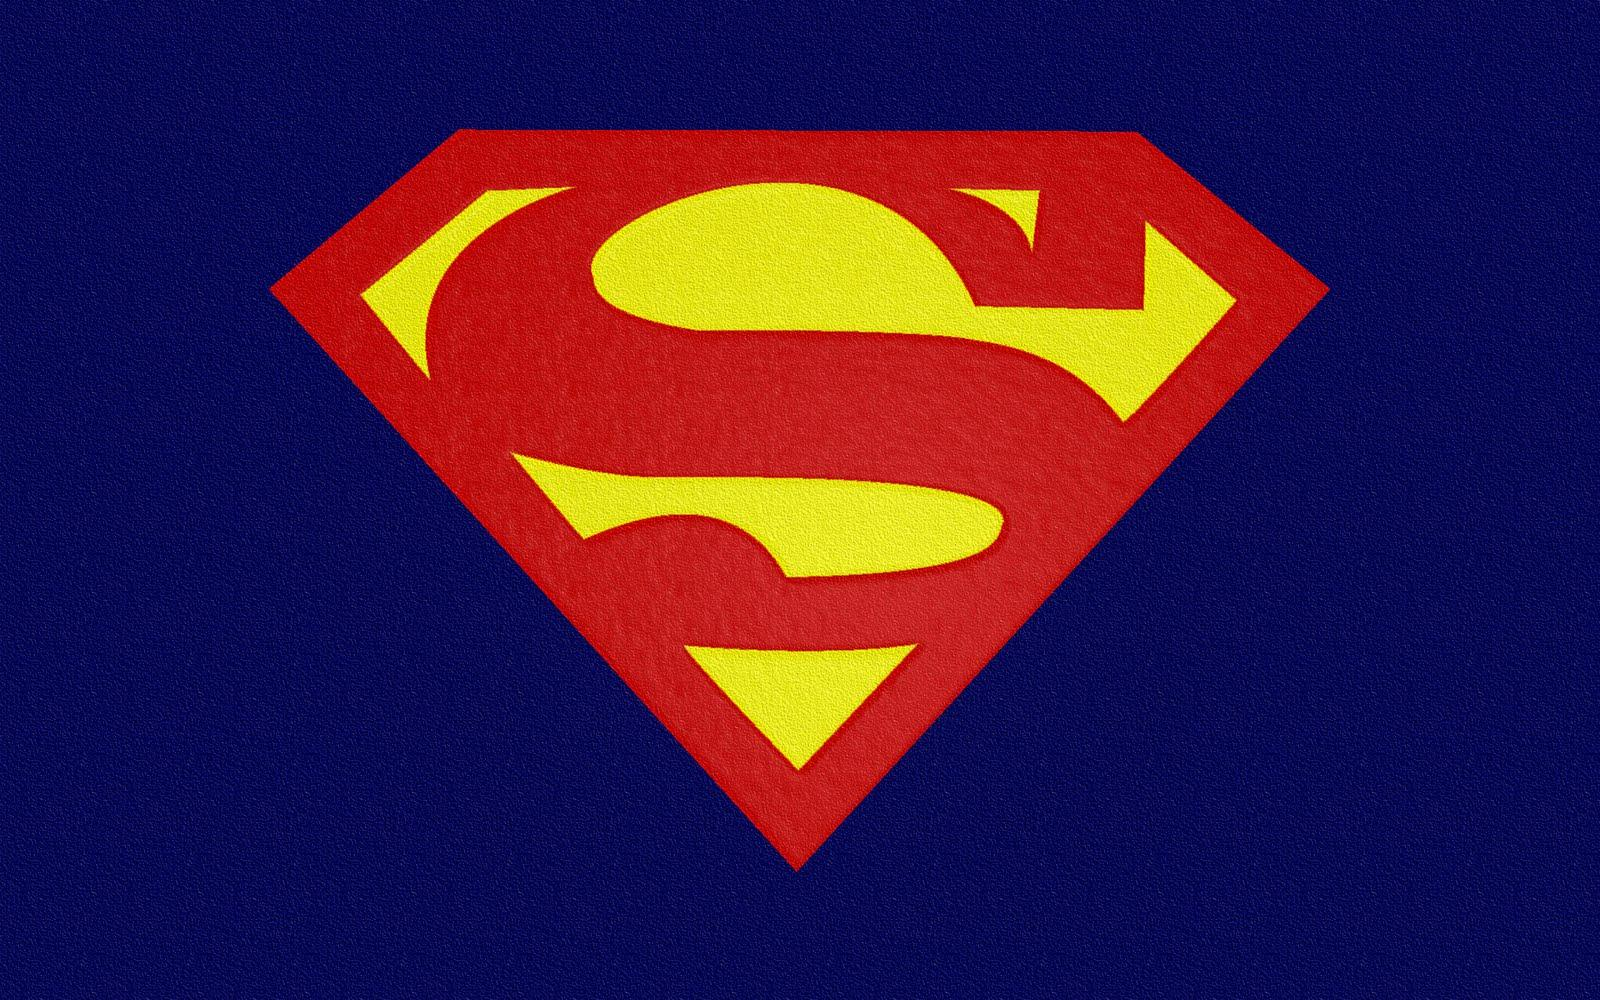 Superman Logo HD Background Wallpaper